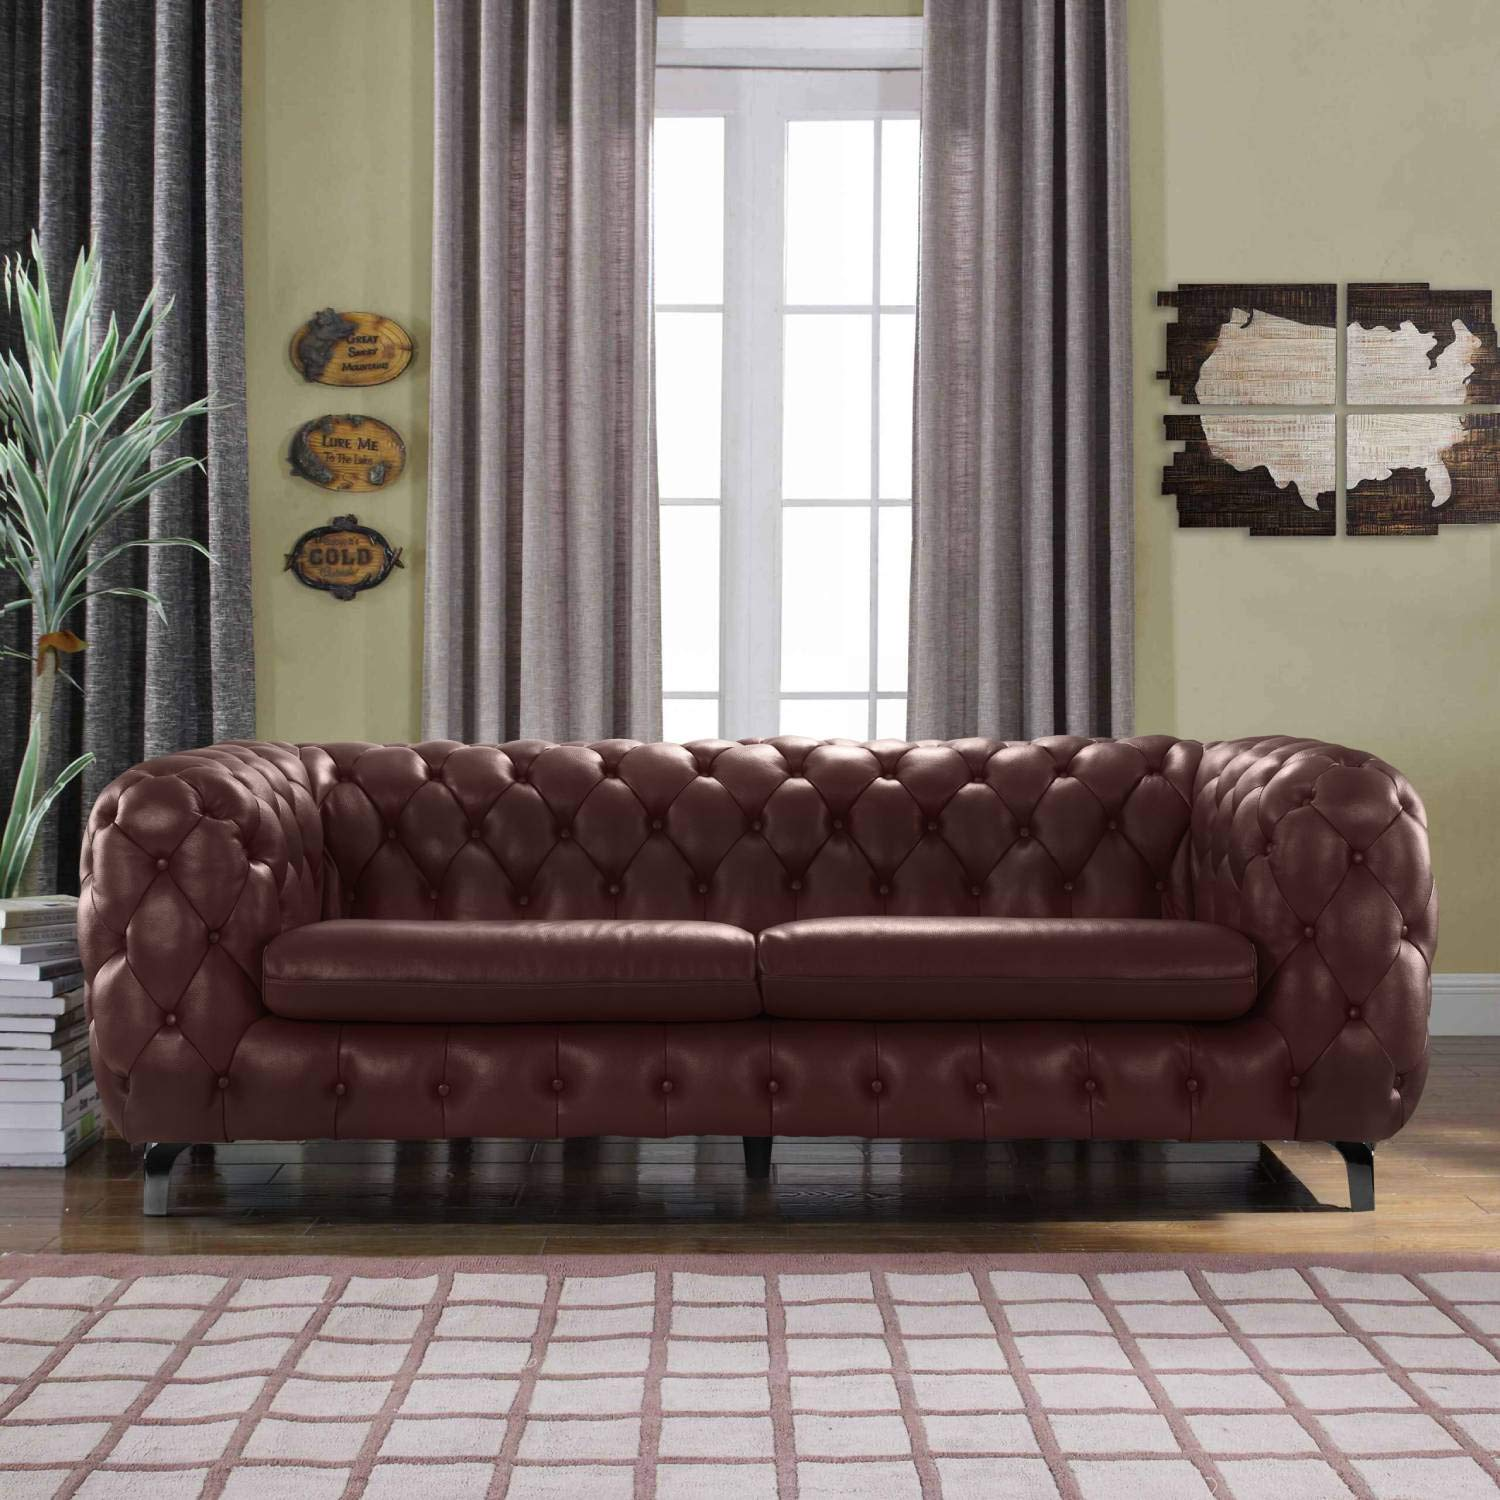 Amazon.com: Brown Leather Chesterfield Sofa Couch w/Tufted ...